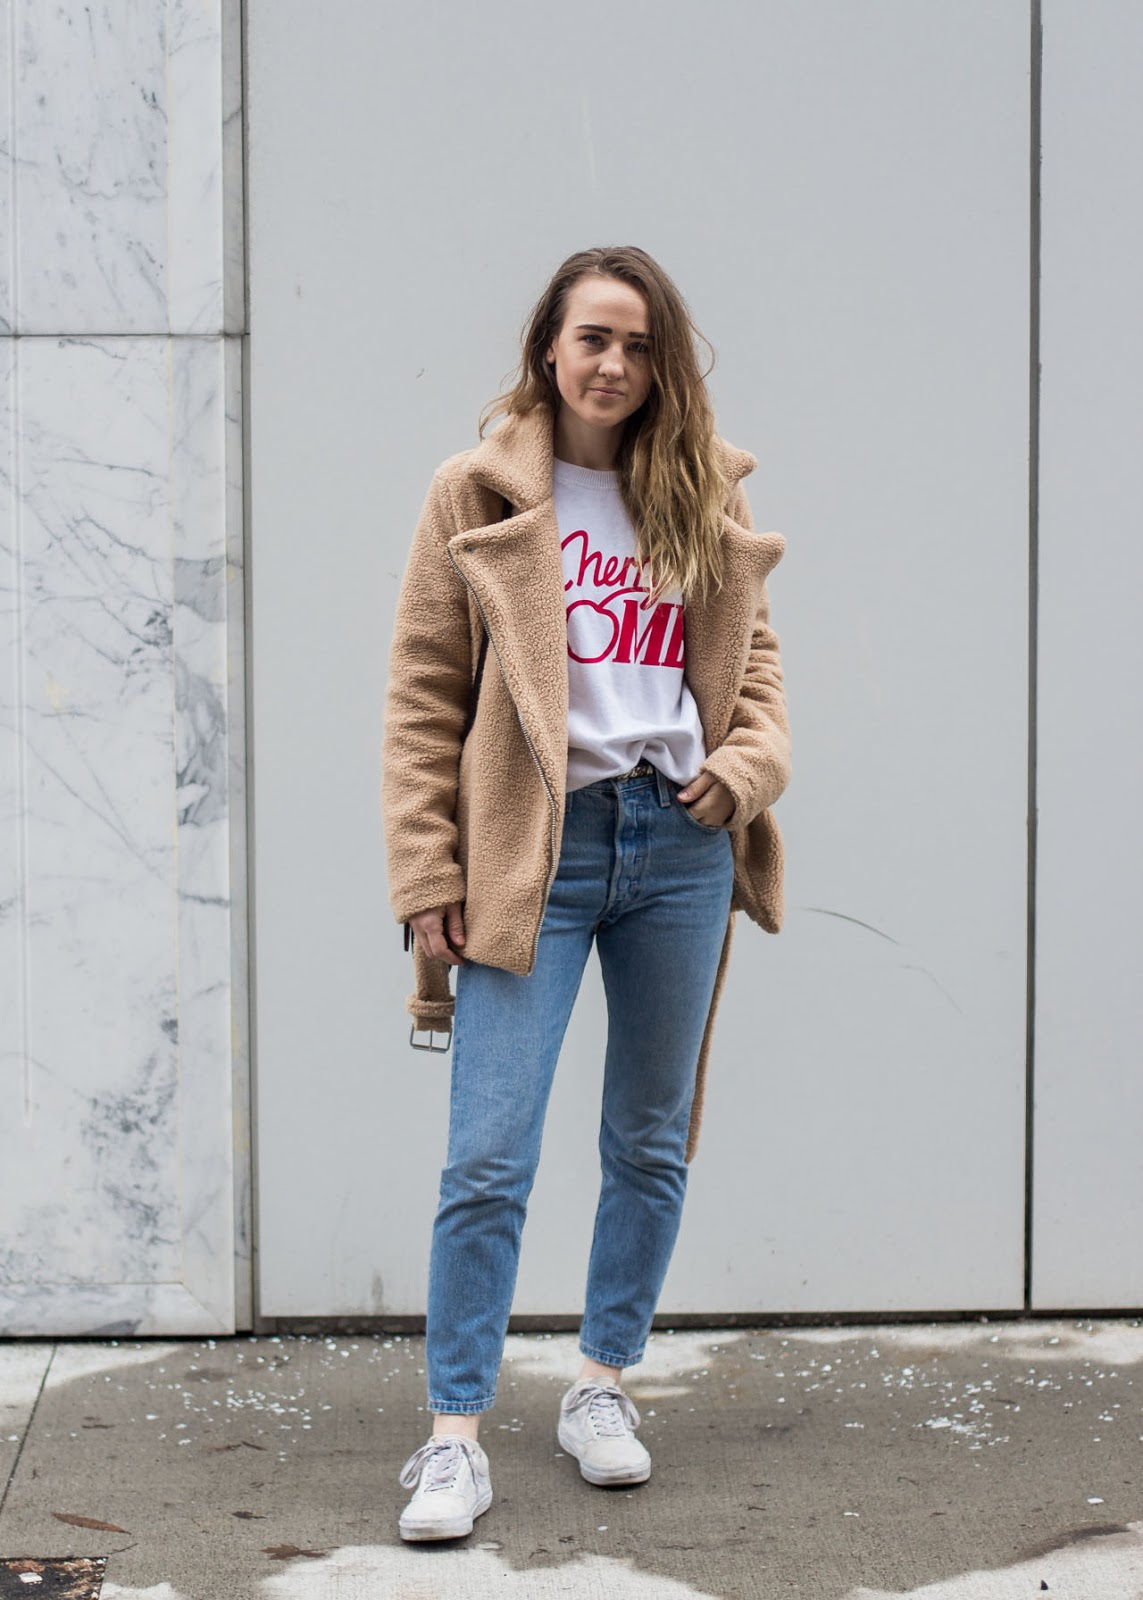 Looking your best when you don't feel your best - Outfit Inspo - In My Dreams Fashion Blog